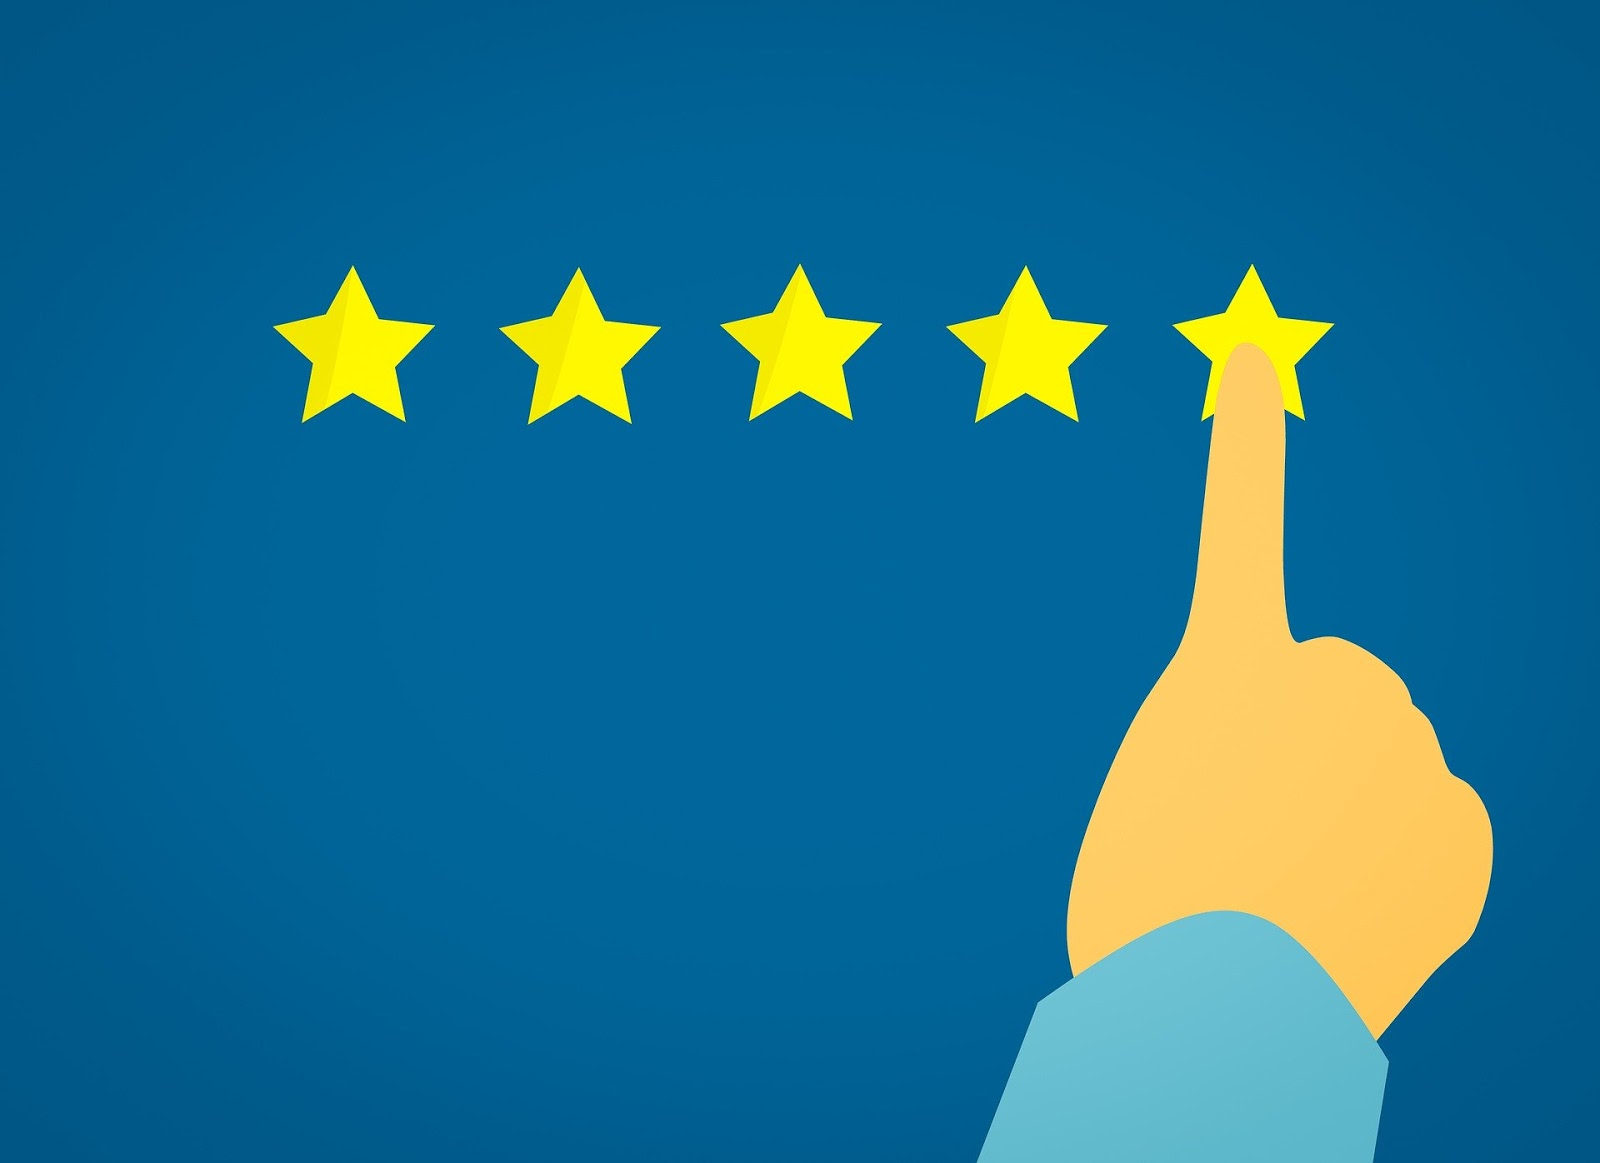 five gold stars in a row with blue background. a human finger points at one star to illustrate a blog post about amazing war movies